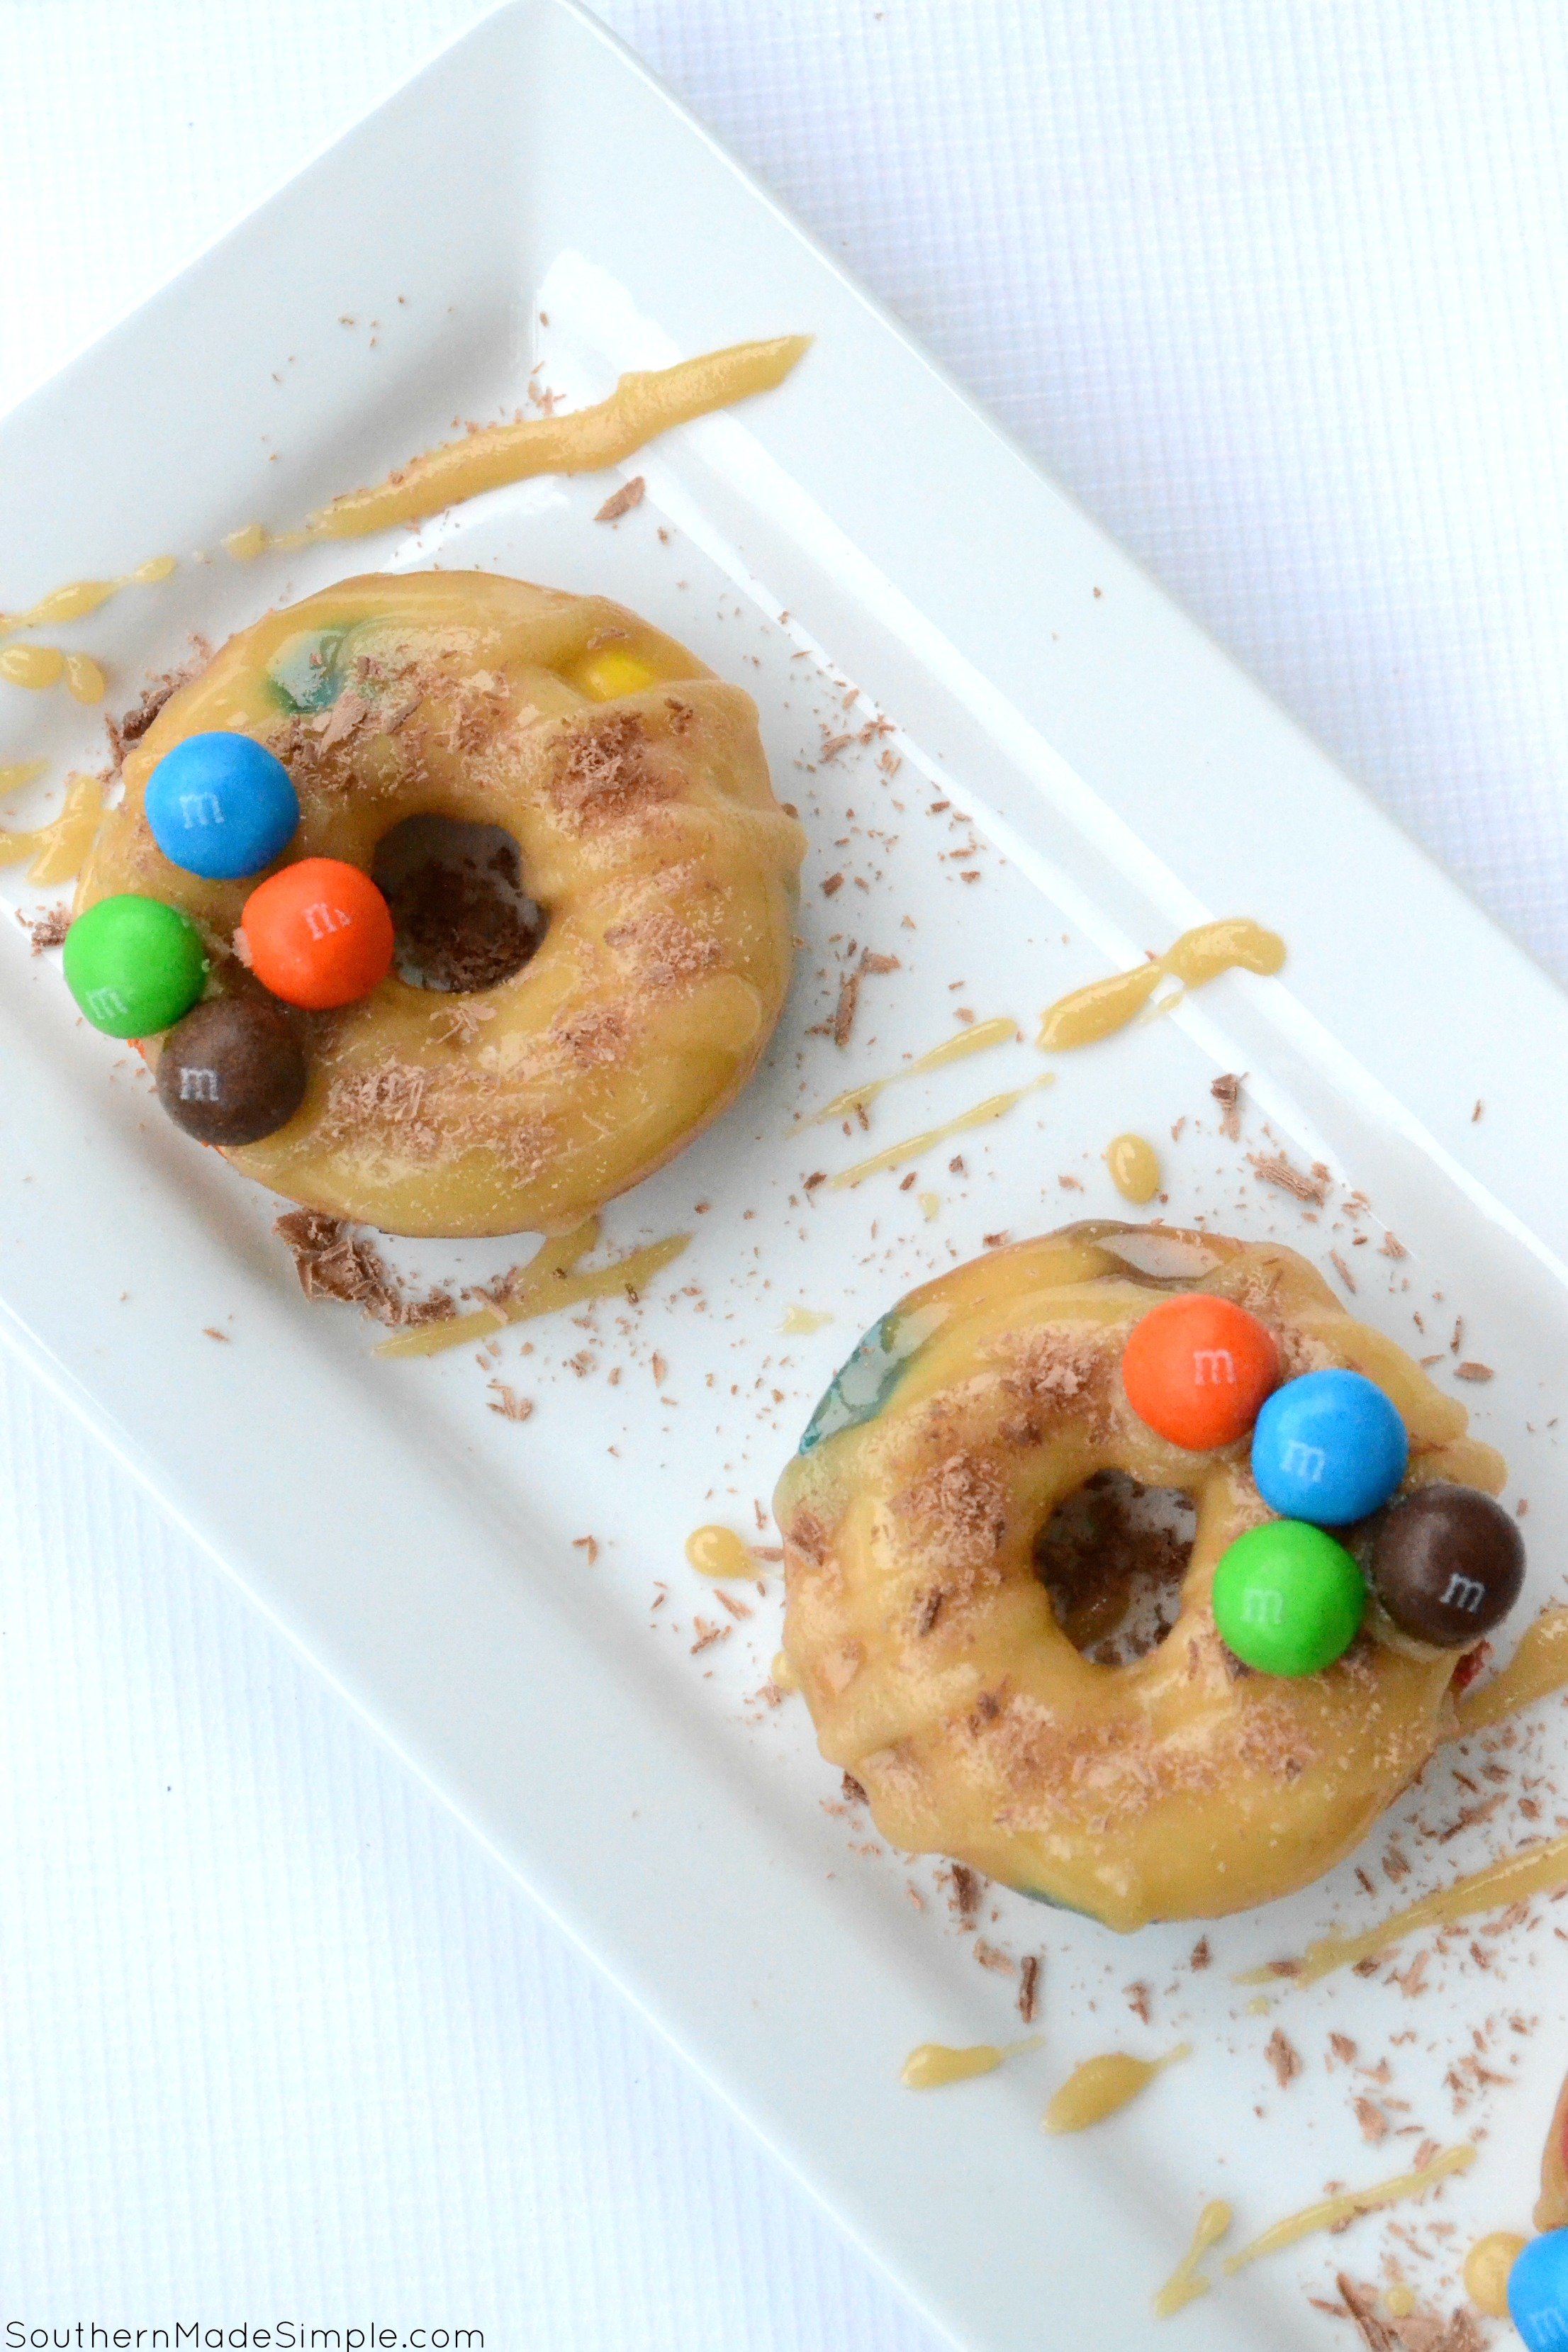 Triple Caramel Candy Doughnuts - the perfectly sweet treat that takes caramel candy to a whole new level! #UnsquareCaramel #ad